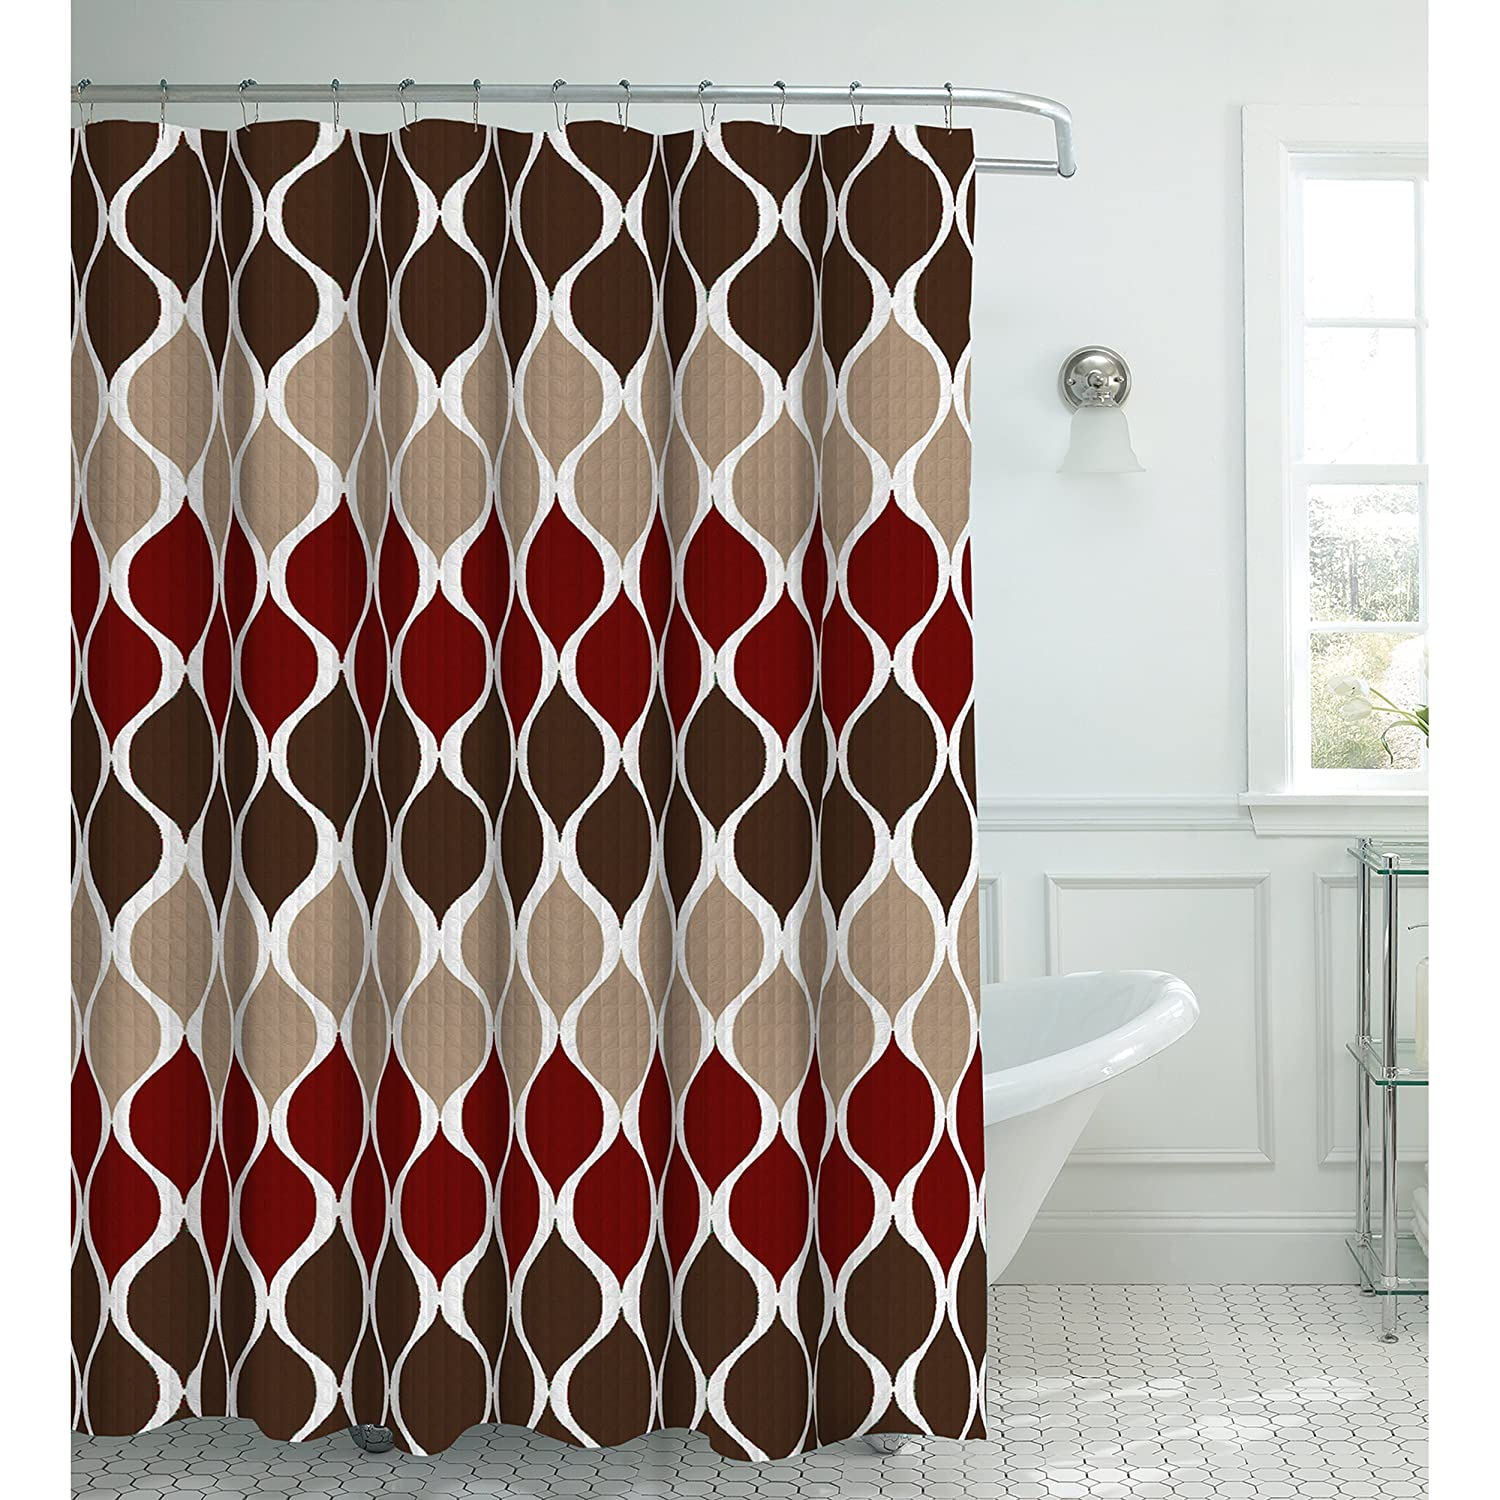 red and tan shower curtain. Amazon com  Clarisse Faux Linen Textured 70 x 72 in Shower Curtain with 12 Metal Rings Espresso Home Kitchen